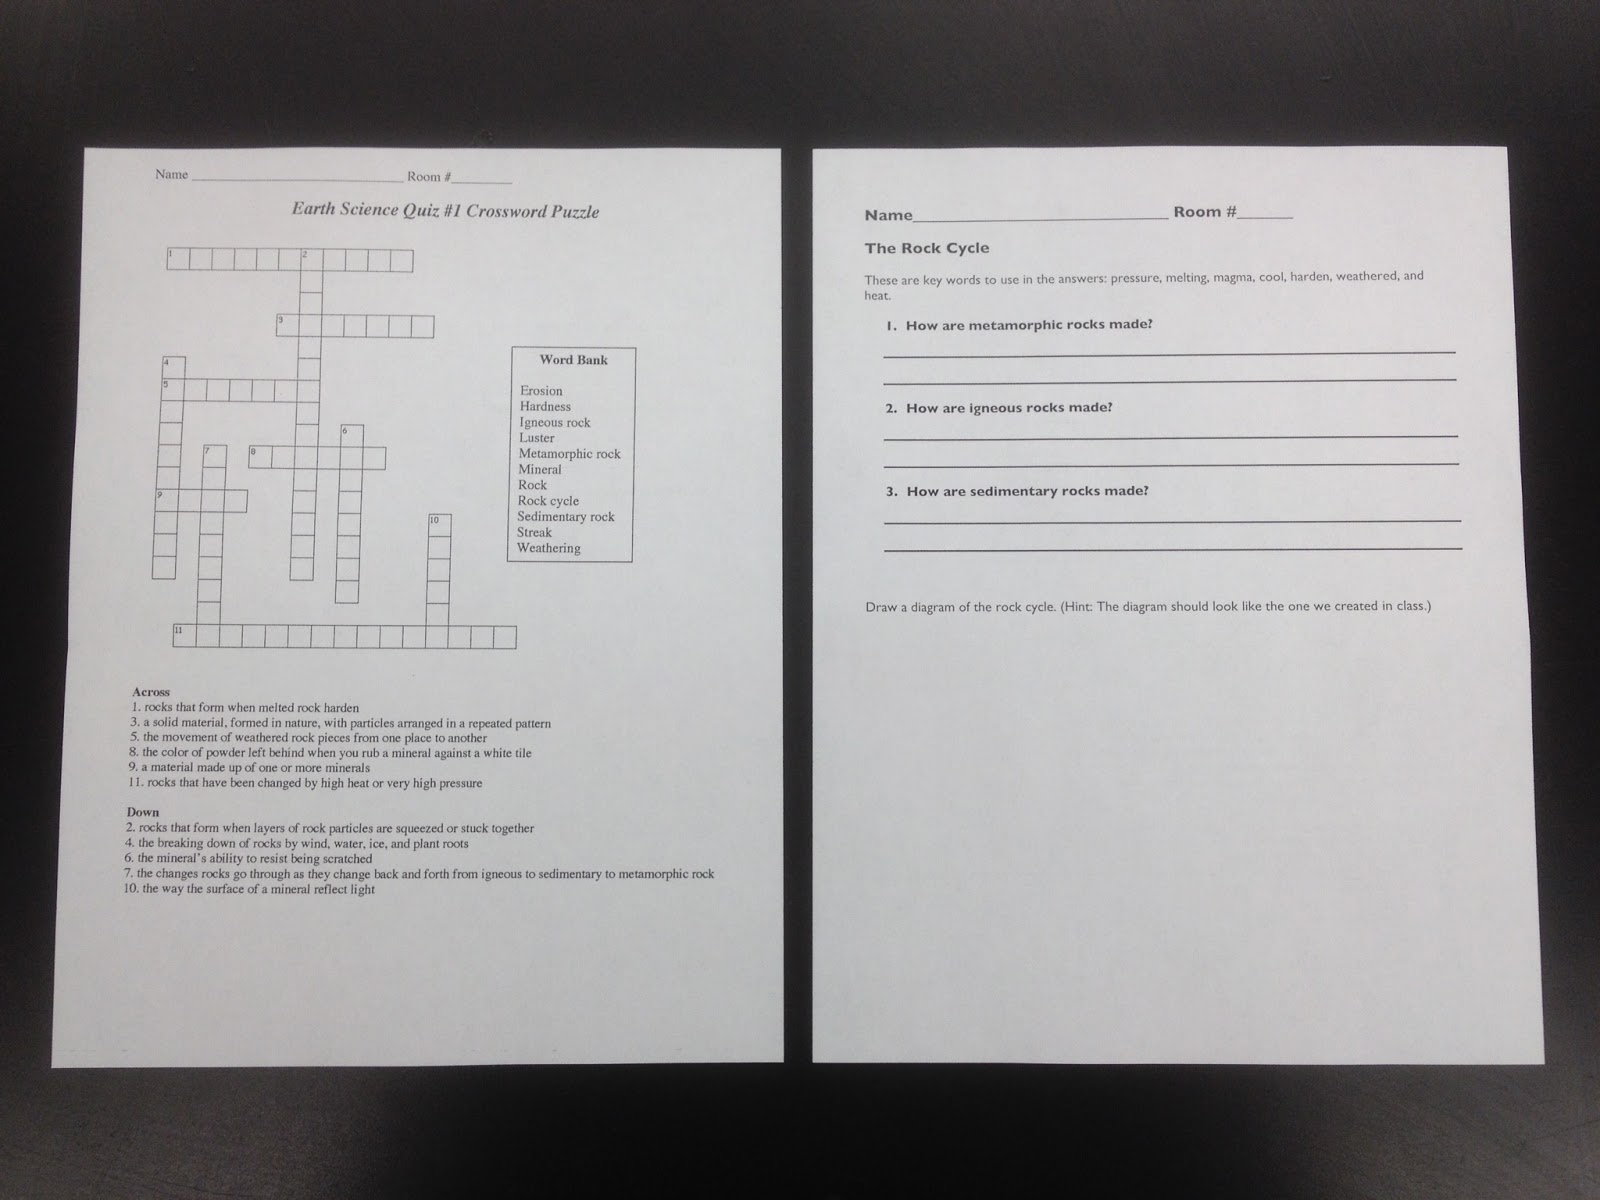 Mr gantts earth science lab blog 4th grade week 3 the rock cycle homework review crossword puzzle ccuart Image collections